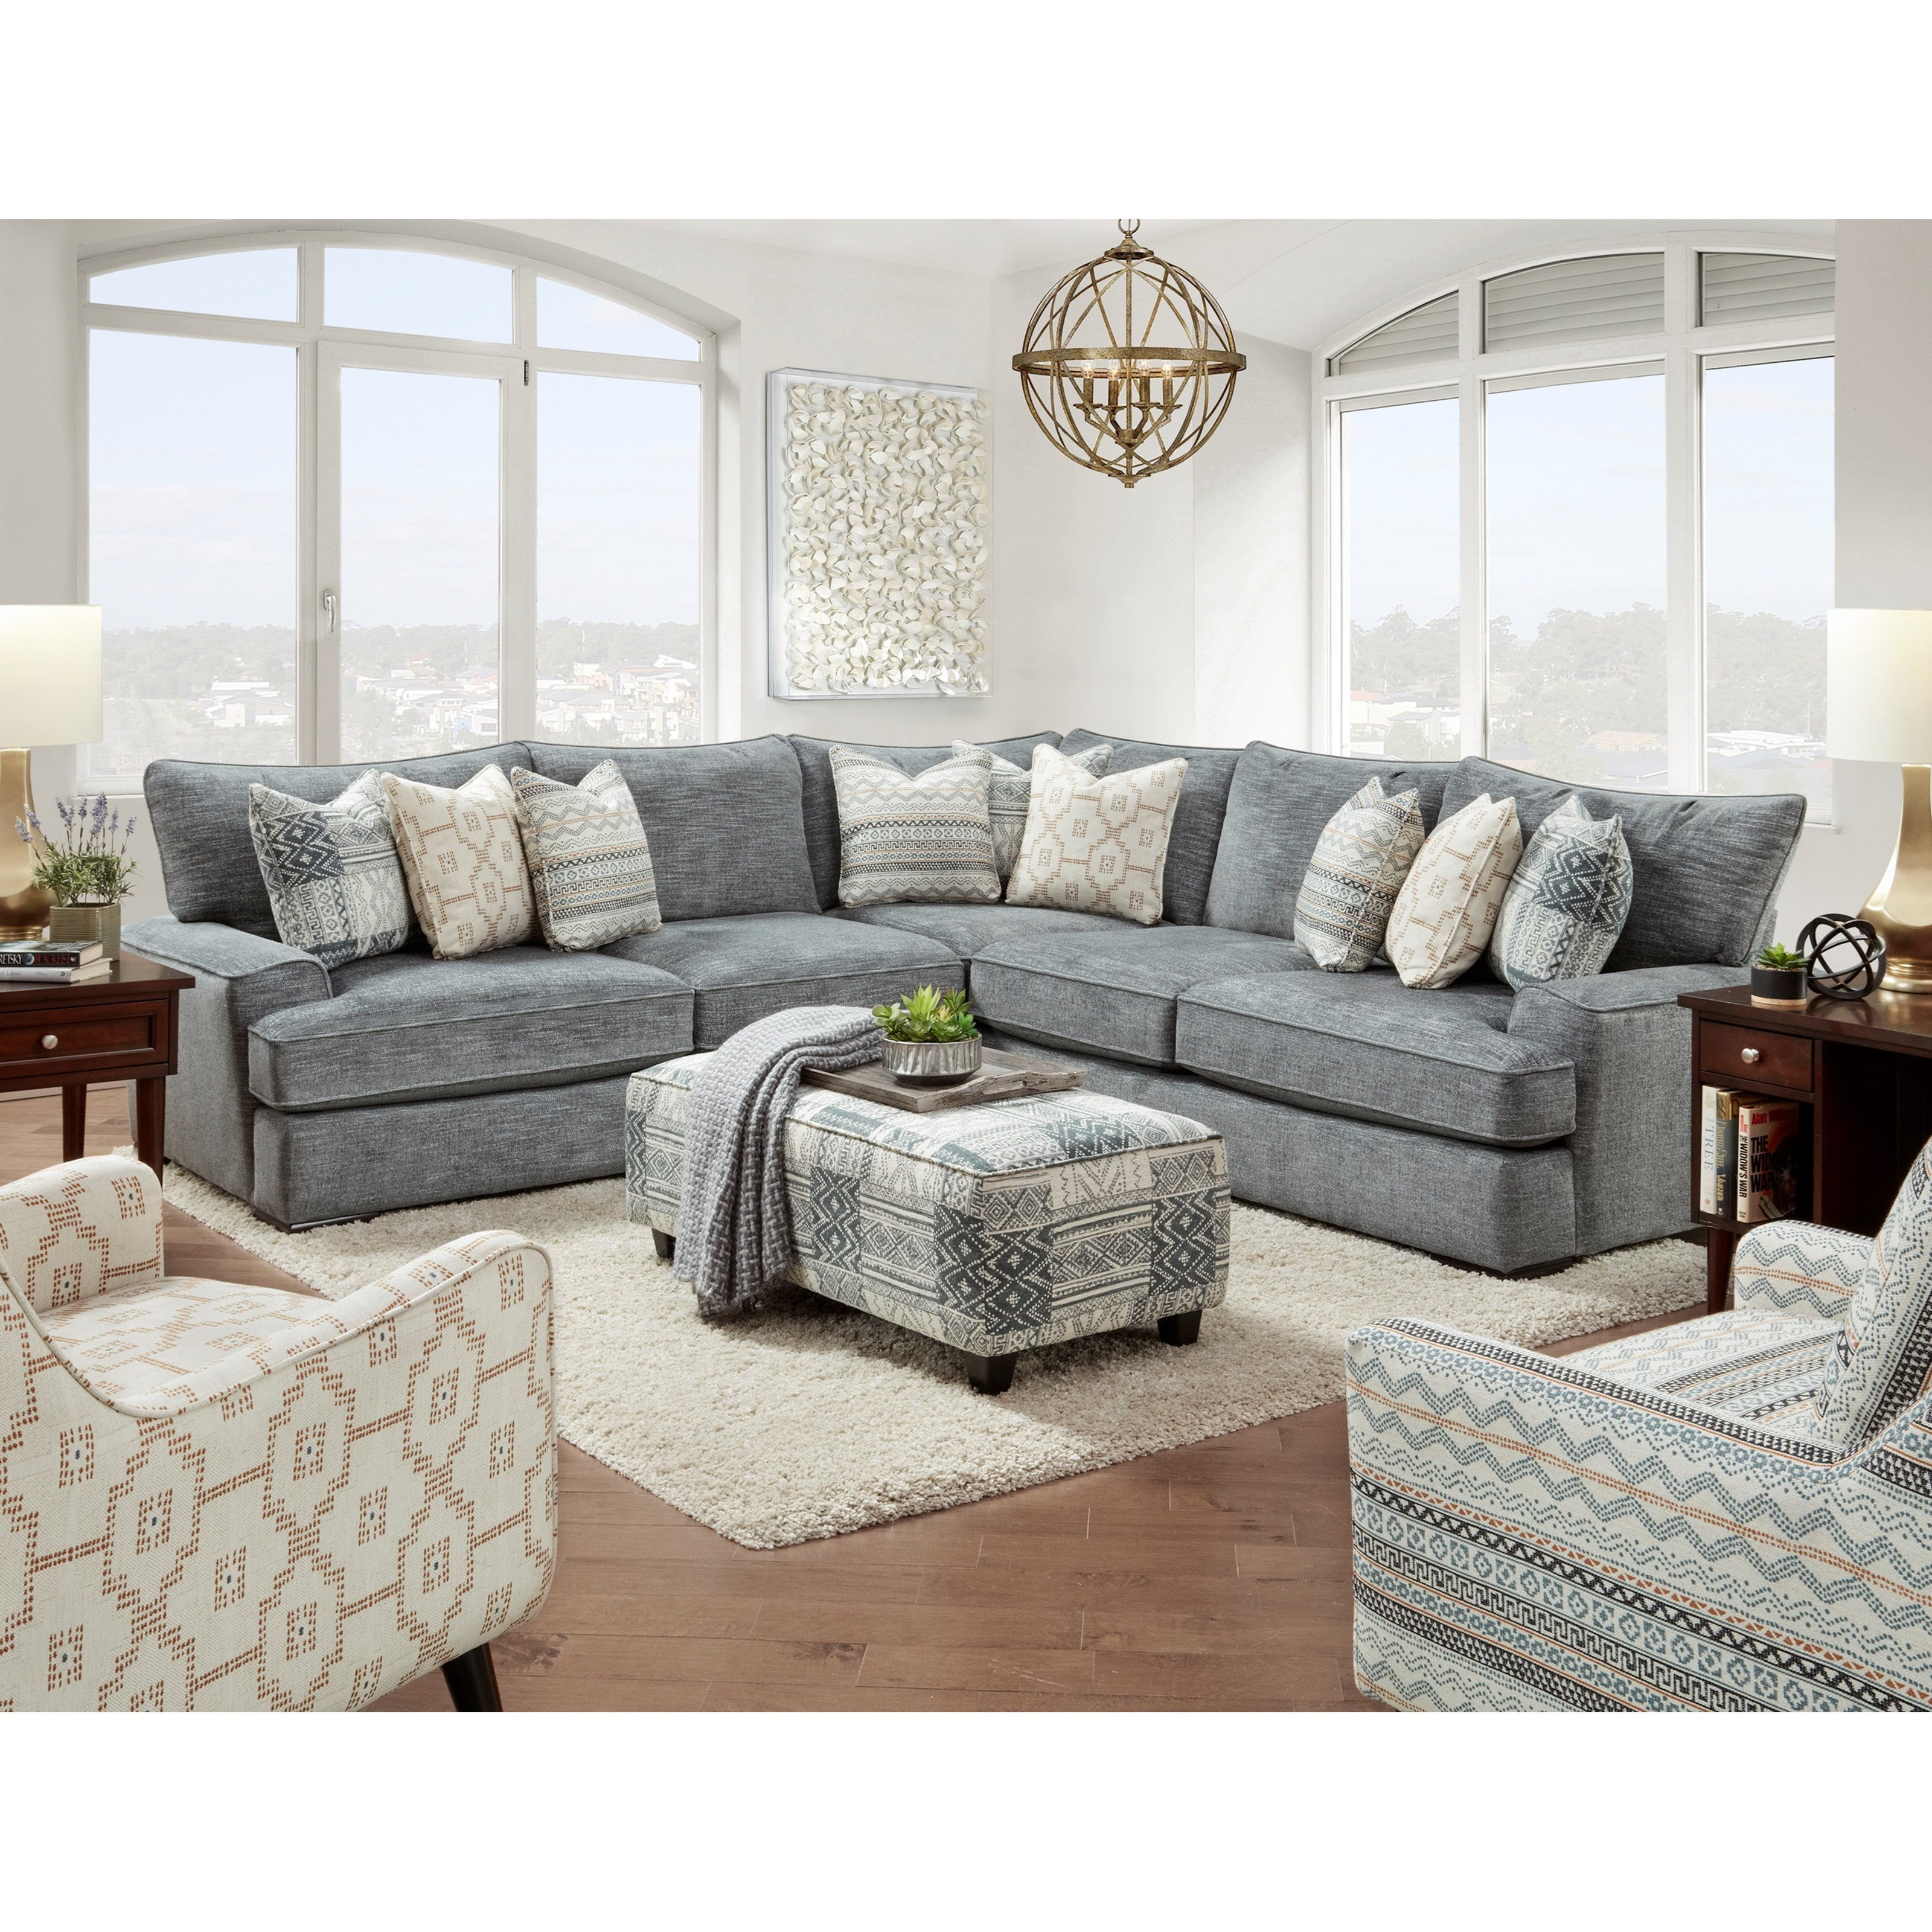 2000 Living Room Group by Fusion Furniture at Miller Waldrop Furniture and Decor